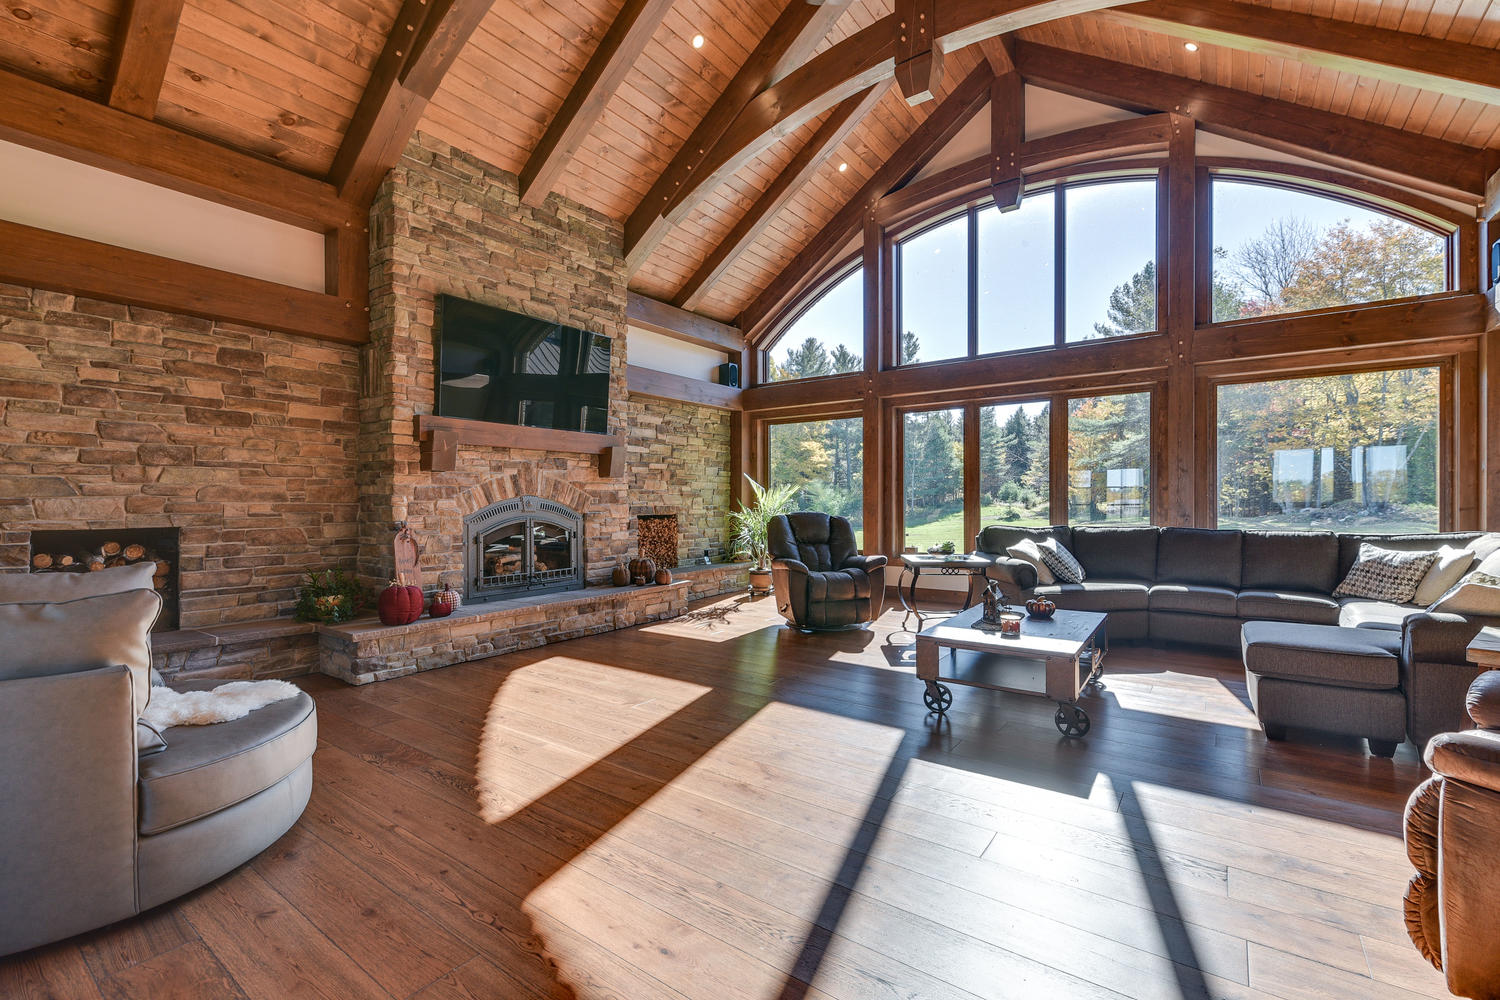 Fireplace project by Kelly Homes Inc